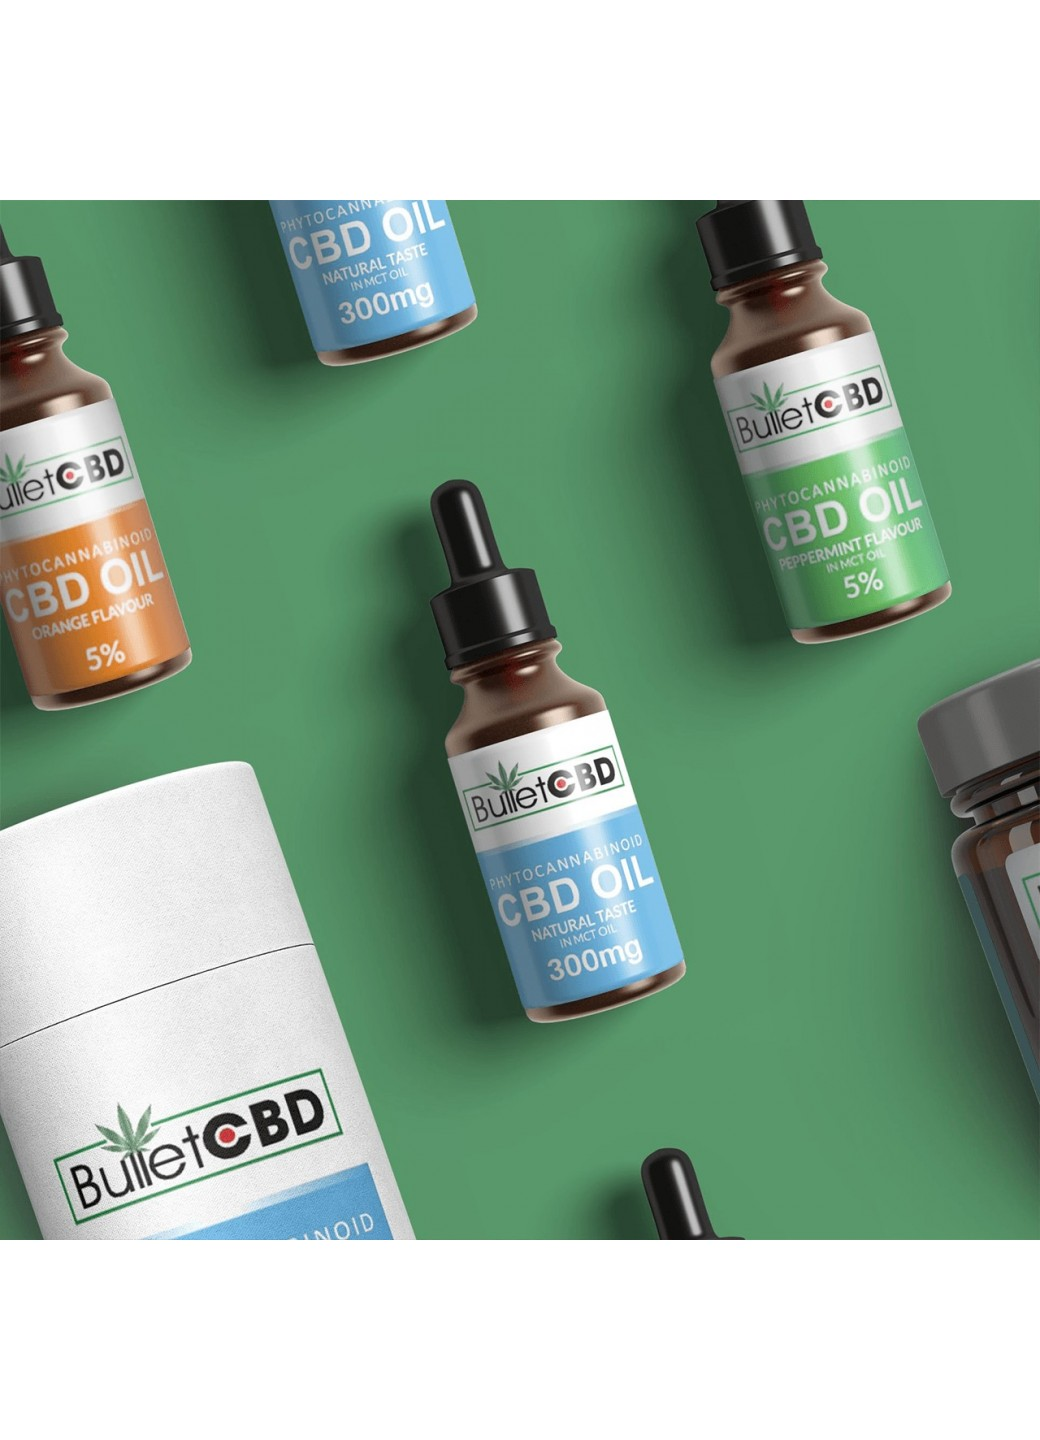 Trust in our CBD products